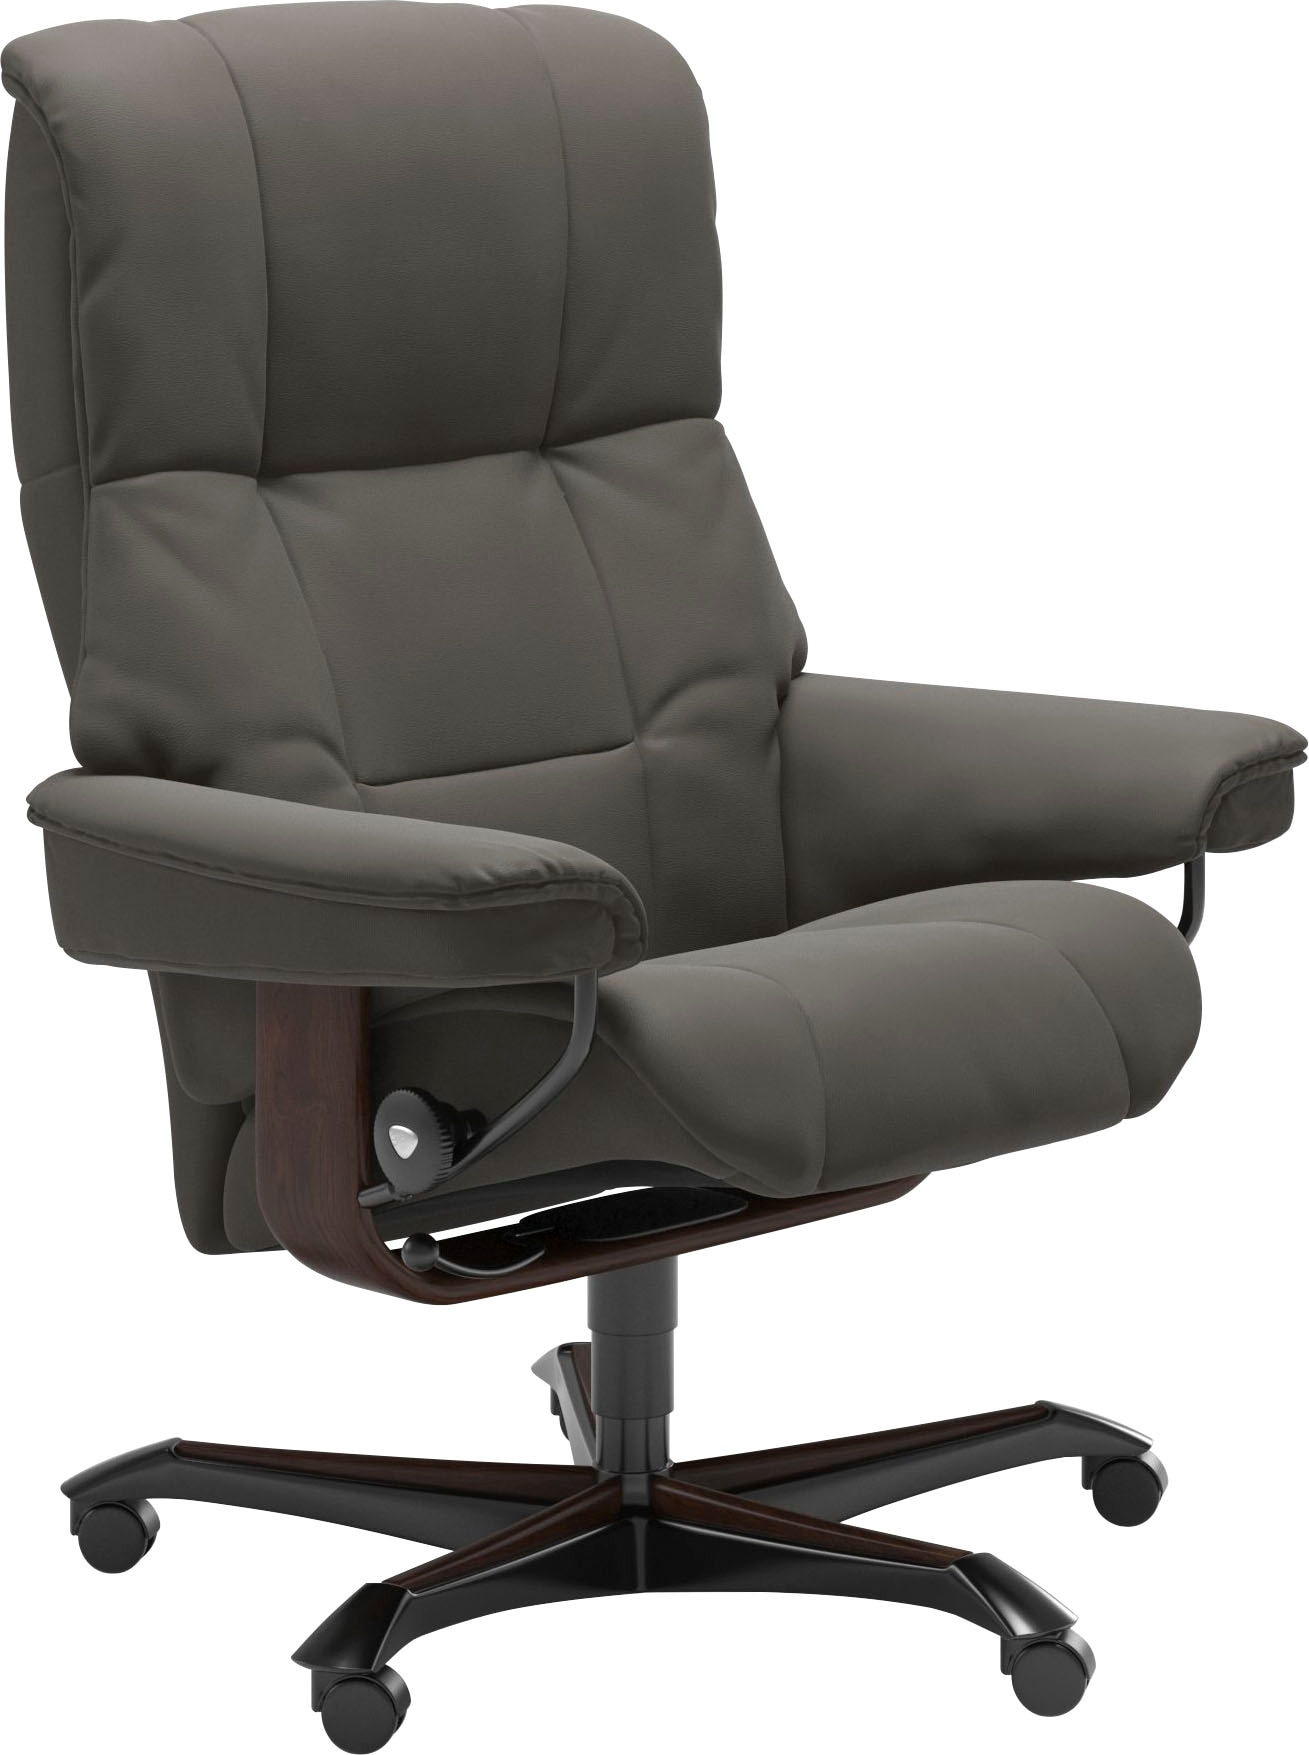 Stressless® Relaxsessel »Mayfair« mit flexibler Ratenzahlung ♥ | Quelle.at